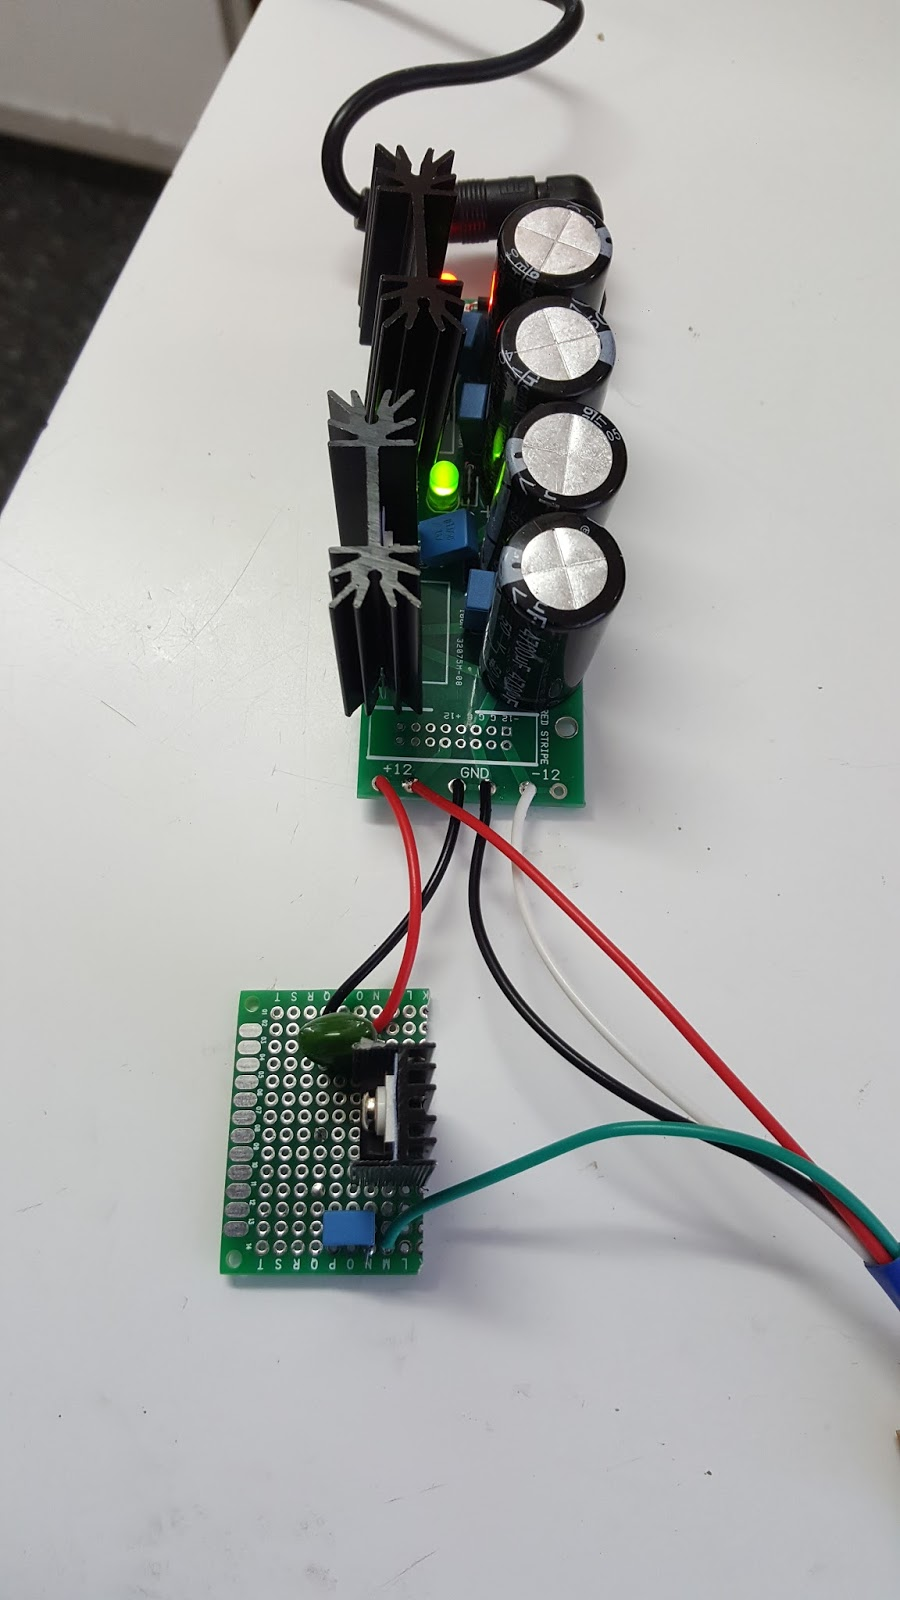 How To Make Simple Dc To Dc Cell Phone as well Simple Condenser Microphone Mini Audio Sound  lifier Circuit Schematic additionally Bridge Rectifier With Capacitor Filter also Viewtopic in addition 9v Power Supply Lm7809. on lm7806 circuit